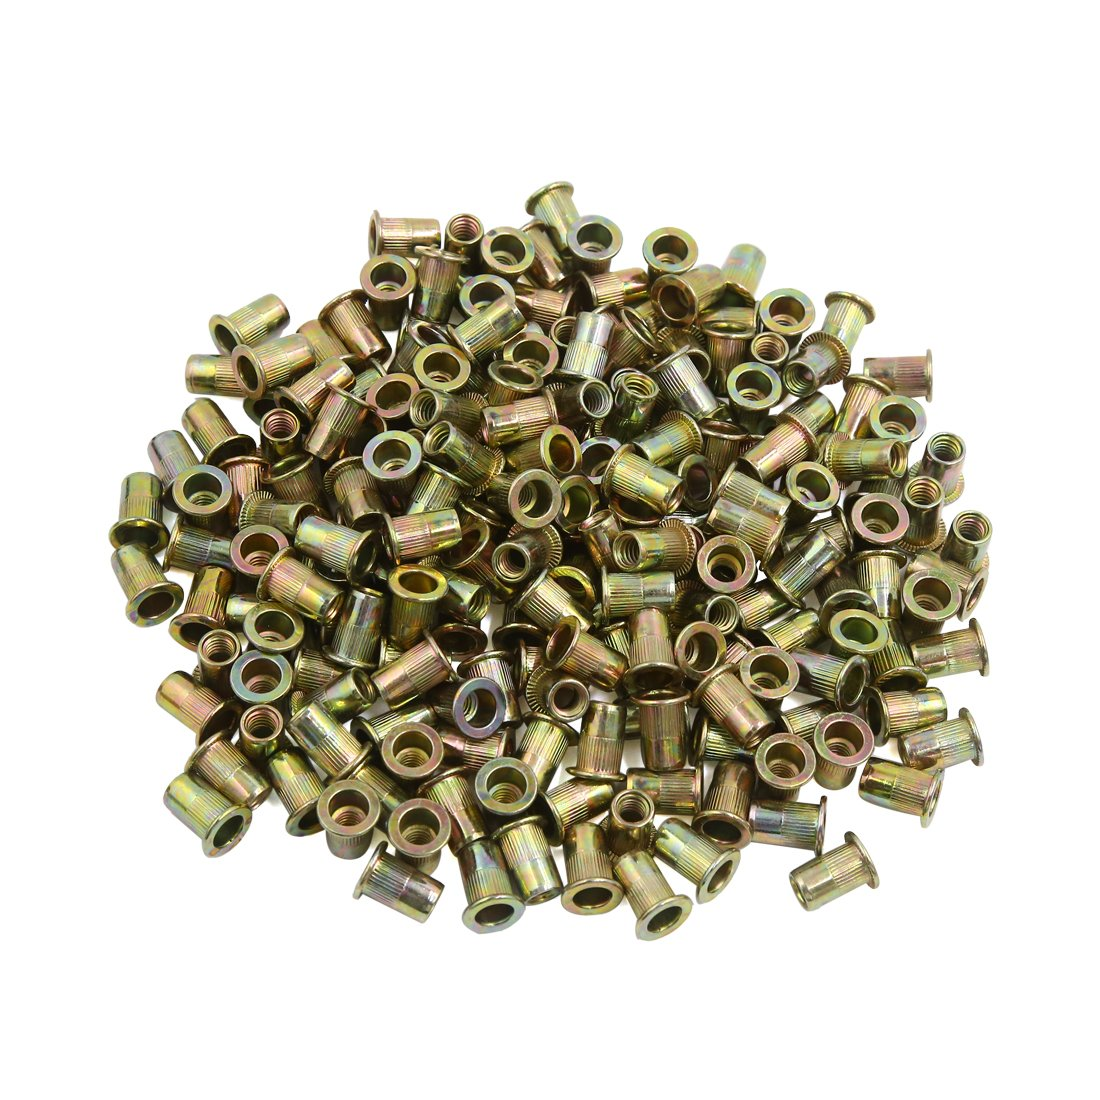 uxcell a16073000ux1917 200 Pcs 1/4-20 Bronze Tone Zinc Plated Stainless Steel Thread Rivet Nut Insert Nutserts, Pack